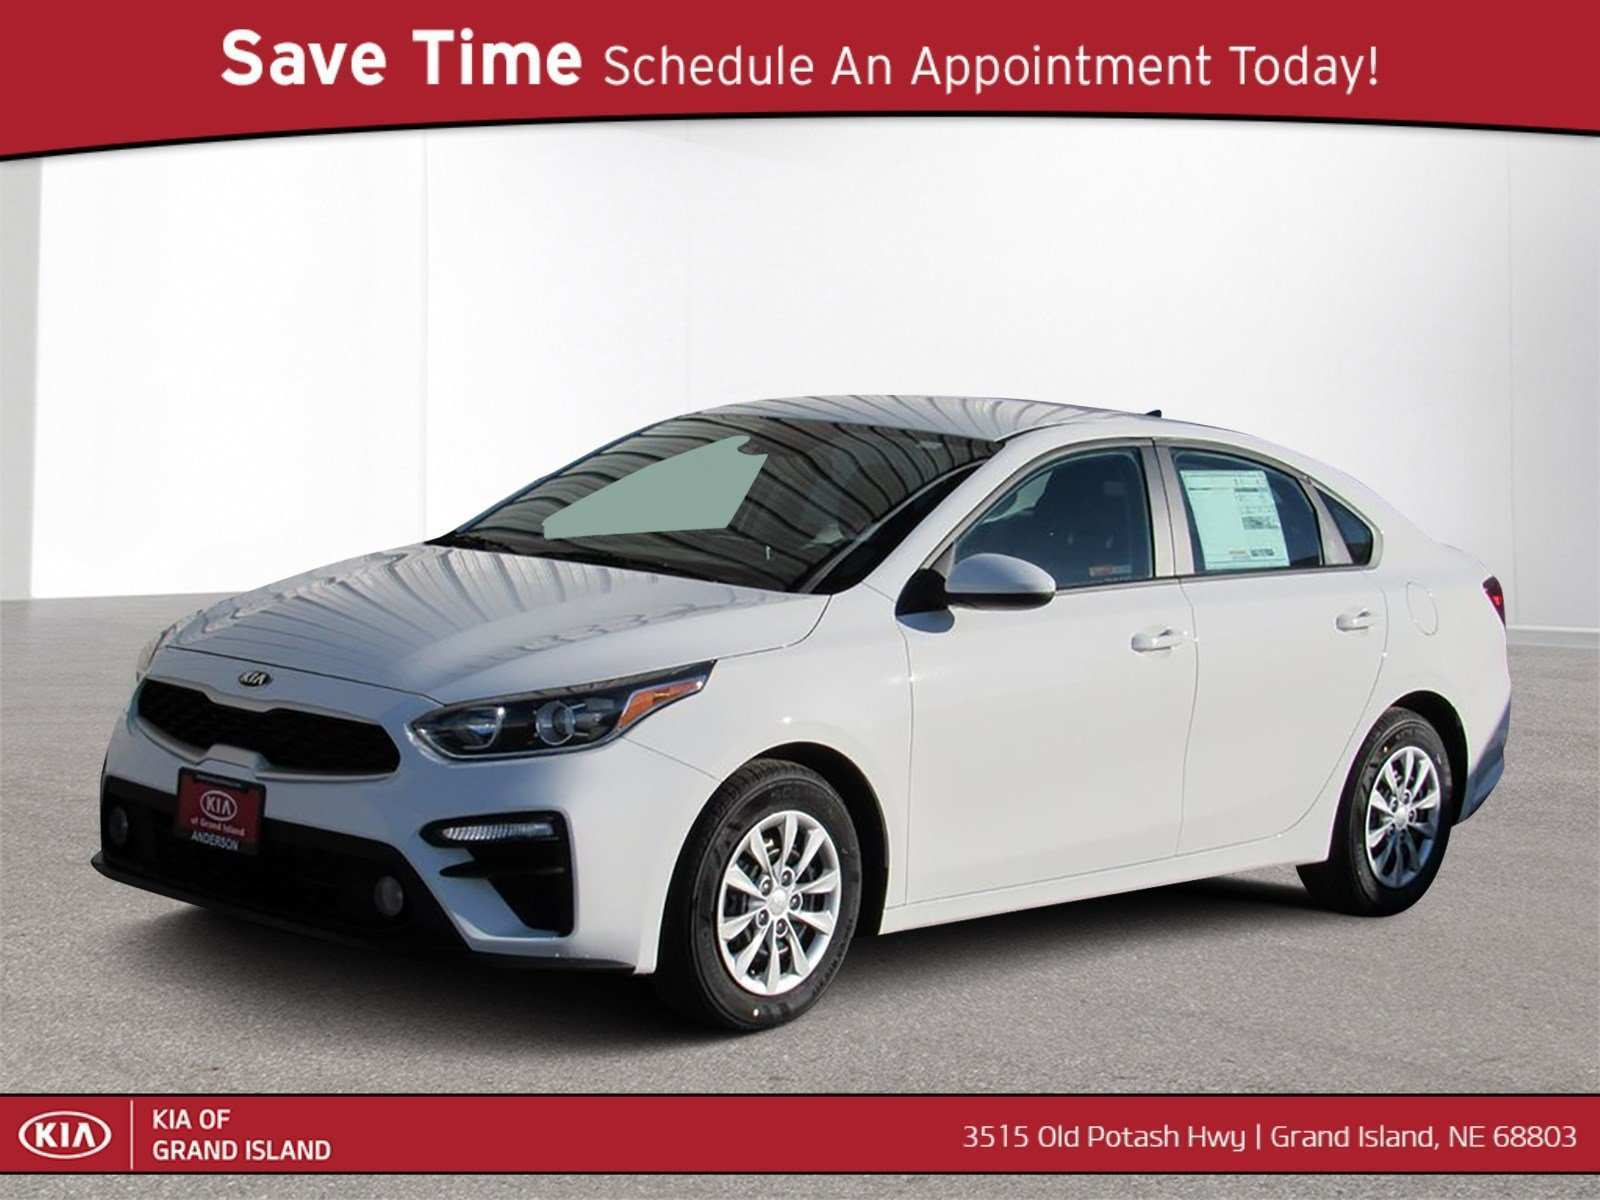 19 New Kia Forte Koup 2019 Price Design And Review